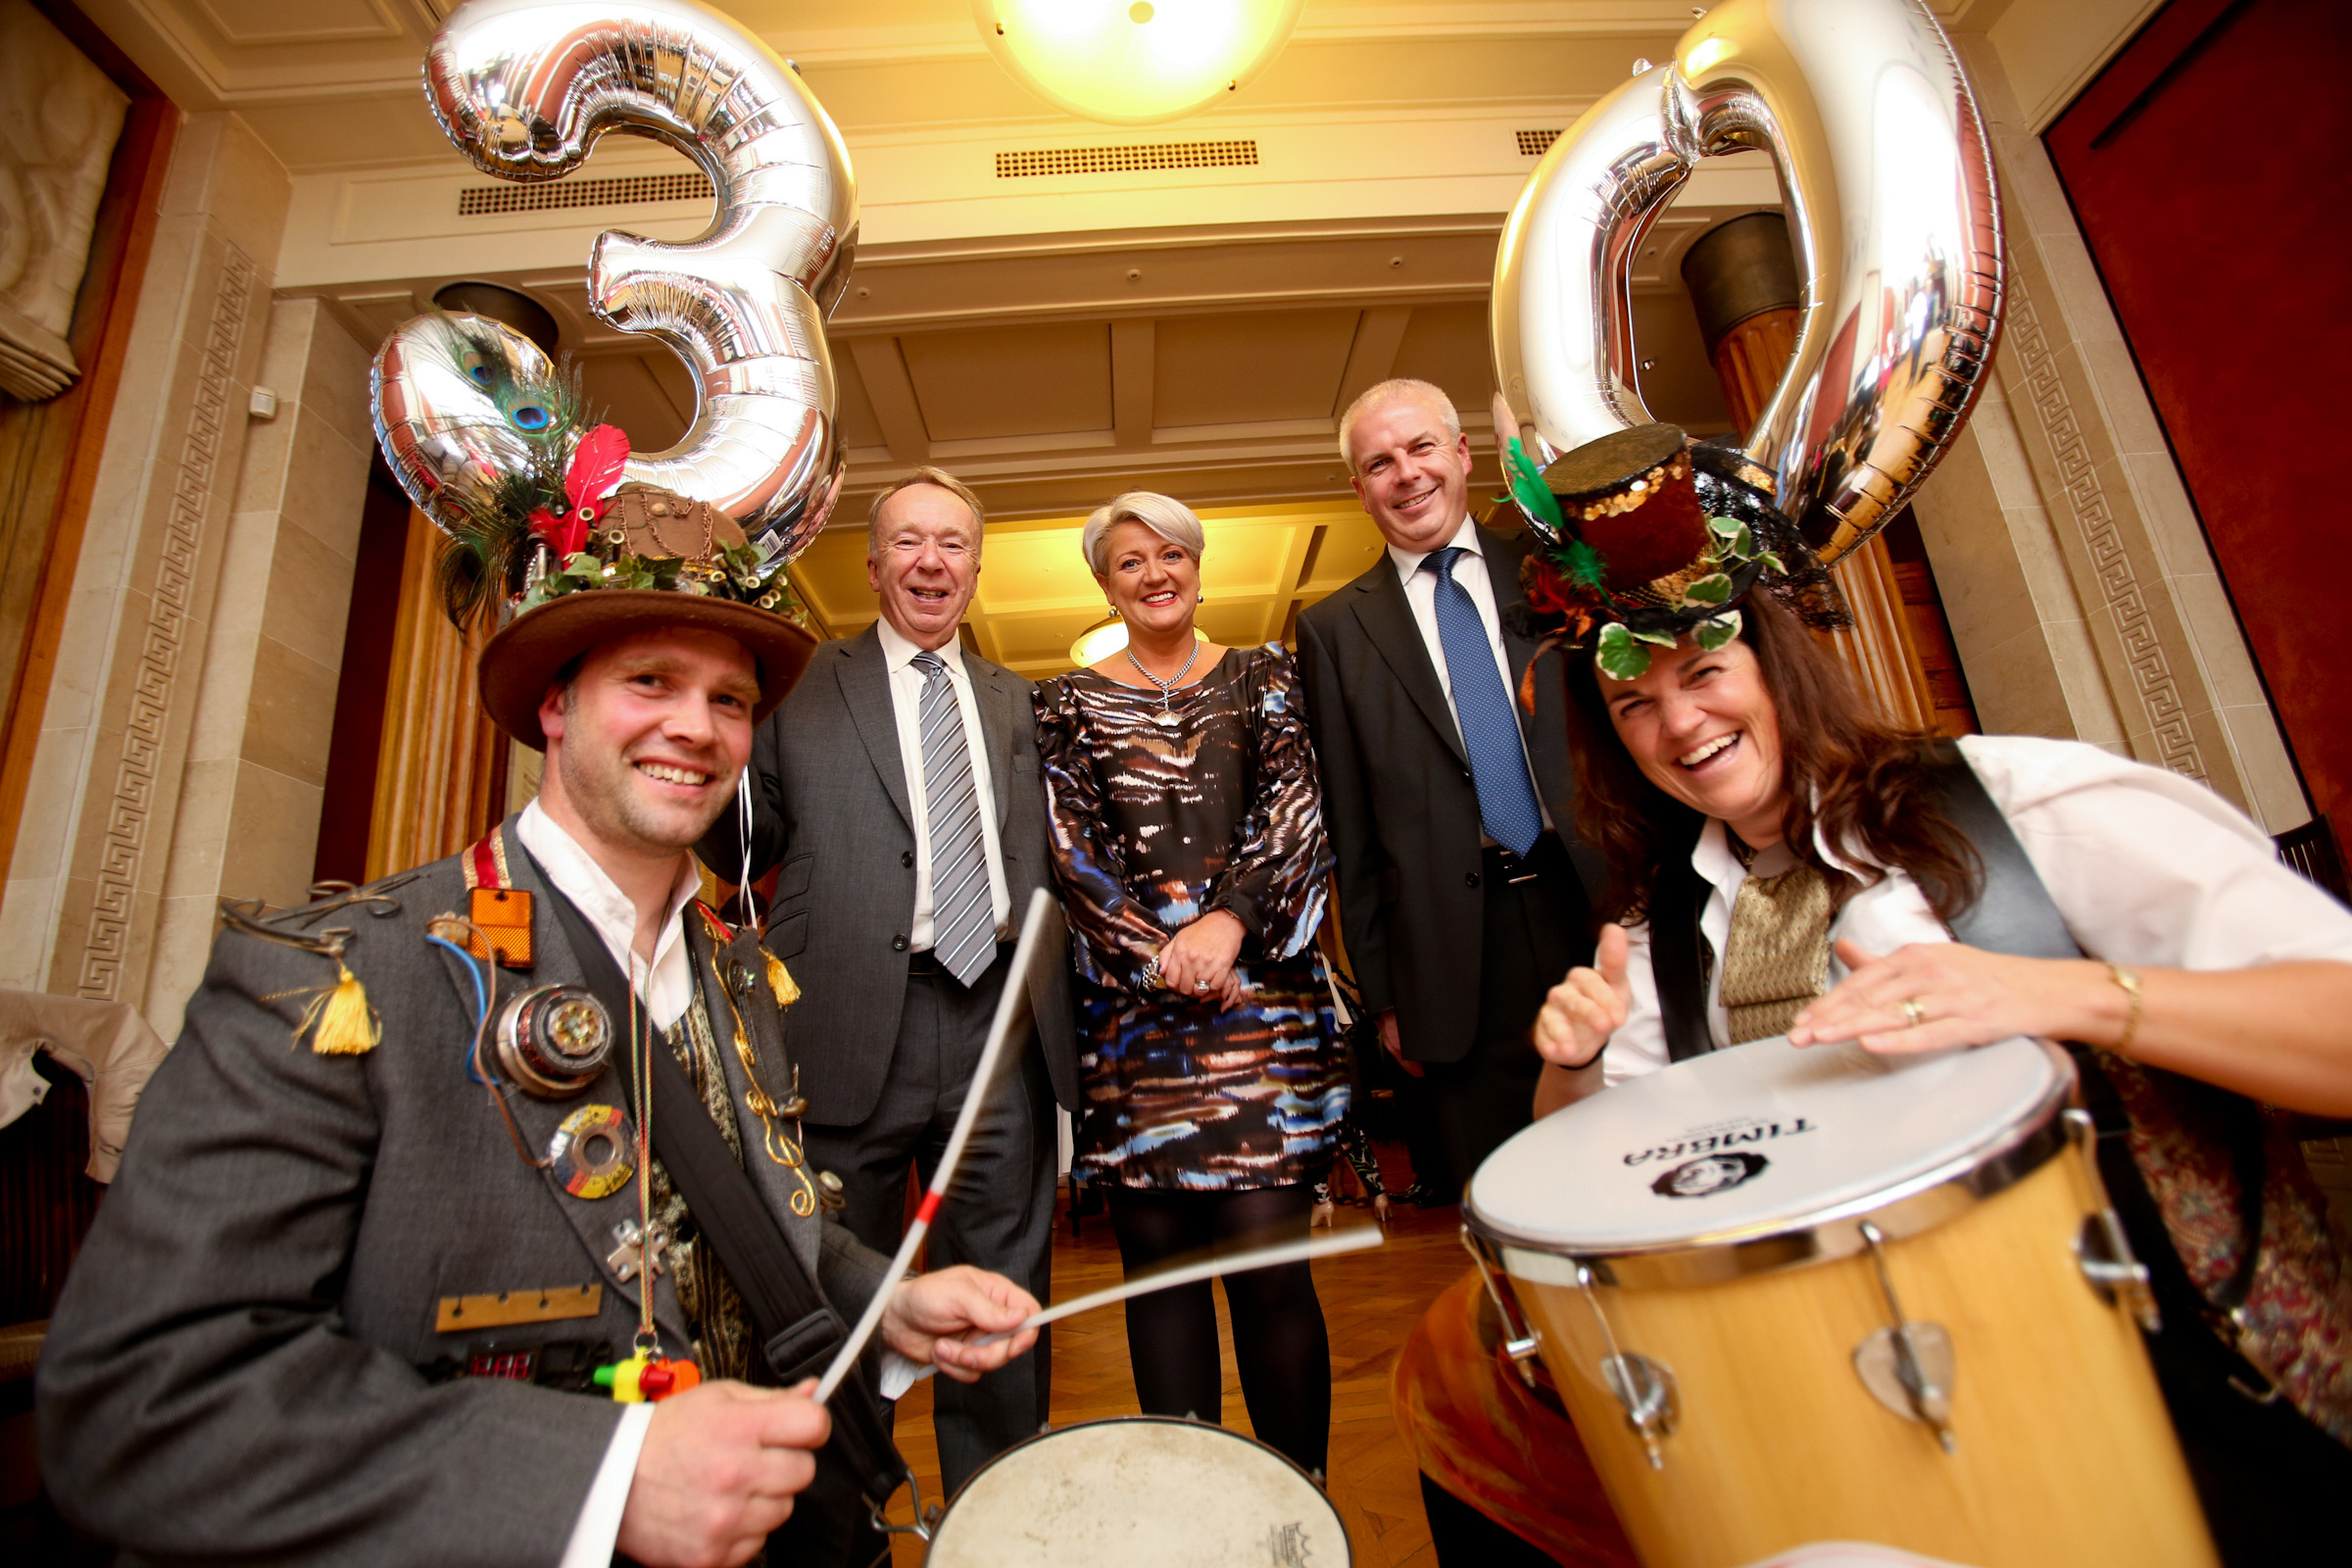 Foundation marks 30 years of supporting Northern Ireland's disadvantaged